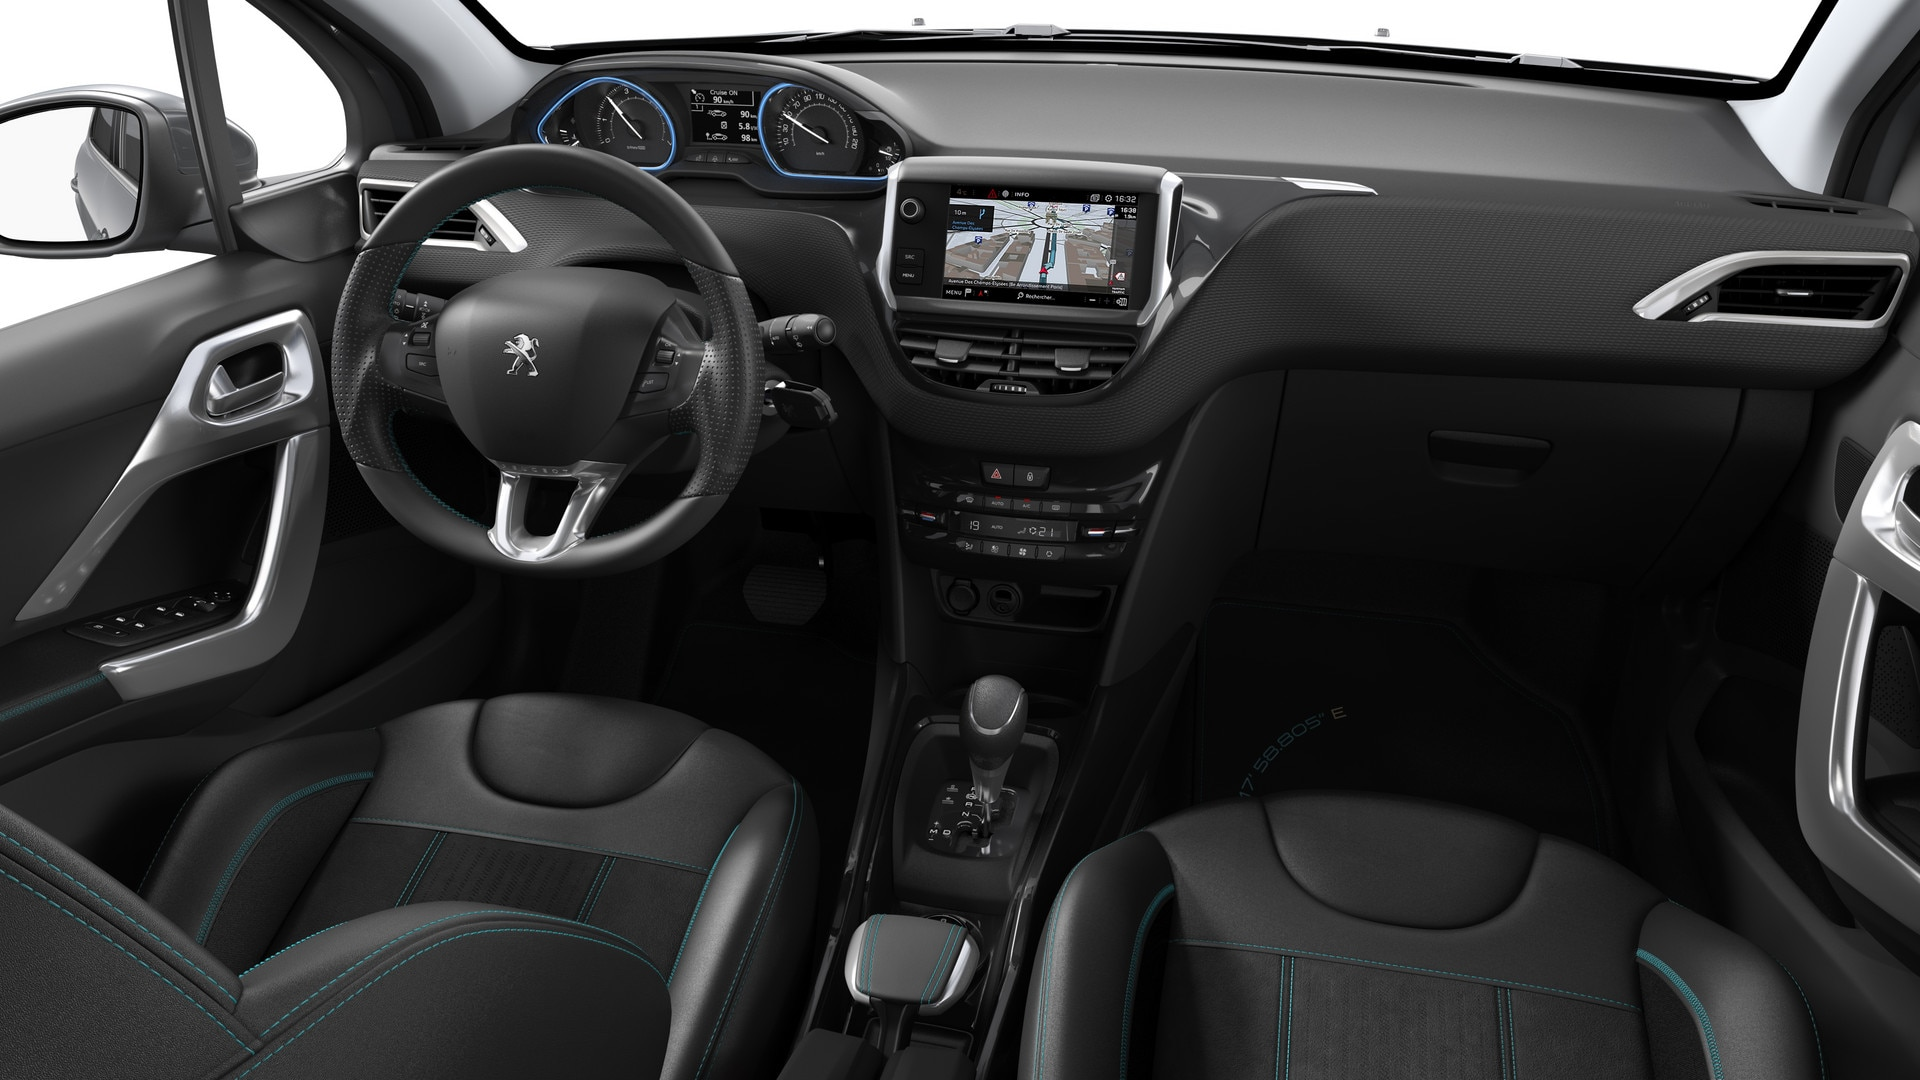 peugeot 2008 crossway essayez le suv compact. Black Bedroom Furniture Sets. Home Design Ideas